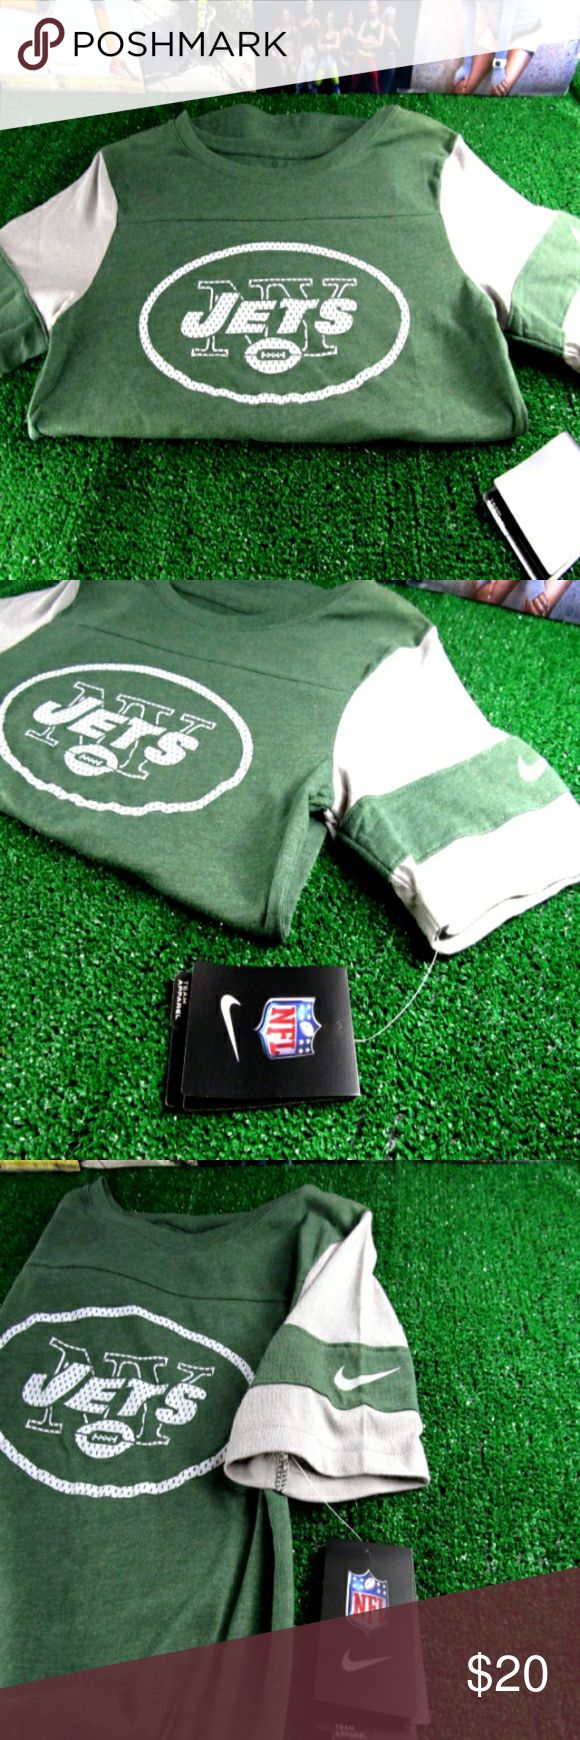 Jets Nike Shirt (Official Women's NFL Gear) Brand new with original retail tags. No visible flaws or defects. Official NFL Gear by Nike. Size XS  **Item ships same day if ordered by 4:00 P. M. Central Daylight Time. All orders placed after business hours are shipped the next day.** Nike Tops Tees - Short Sleeve